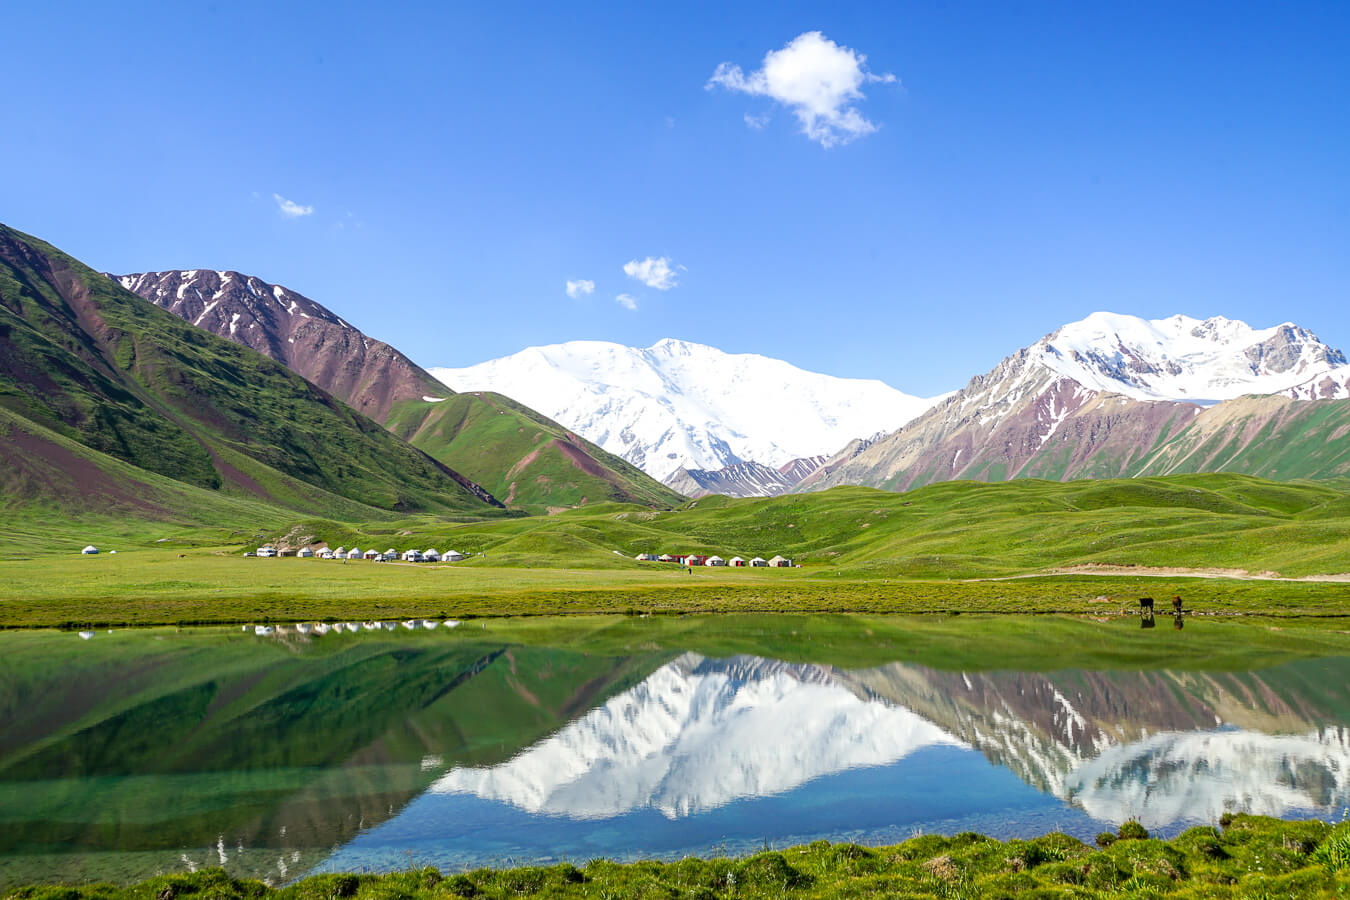 Tulparkul lake with yurts in Kyrgyzstan